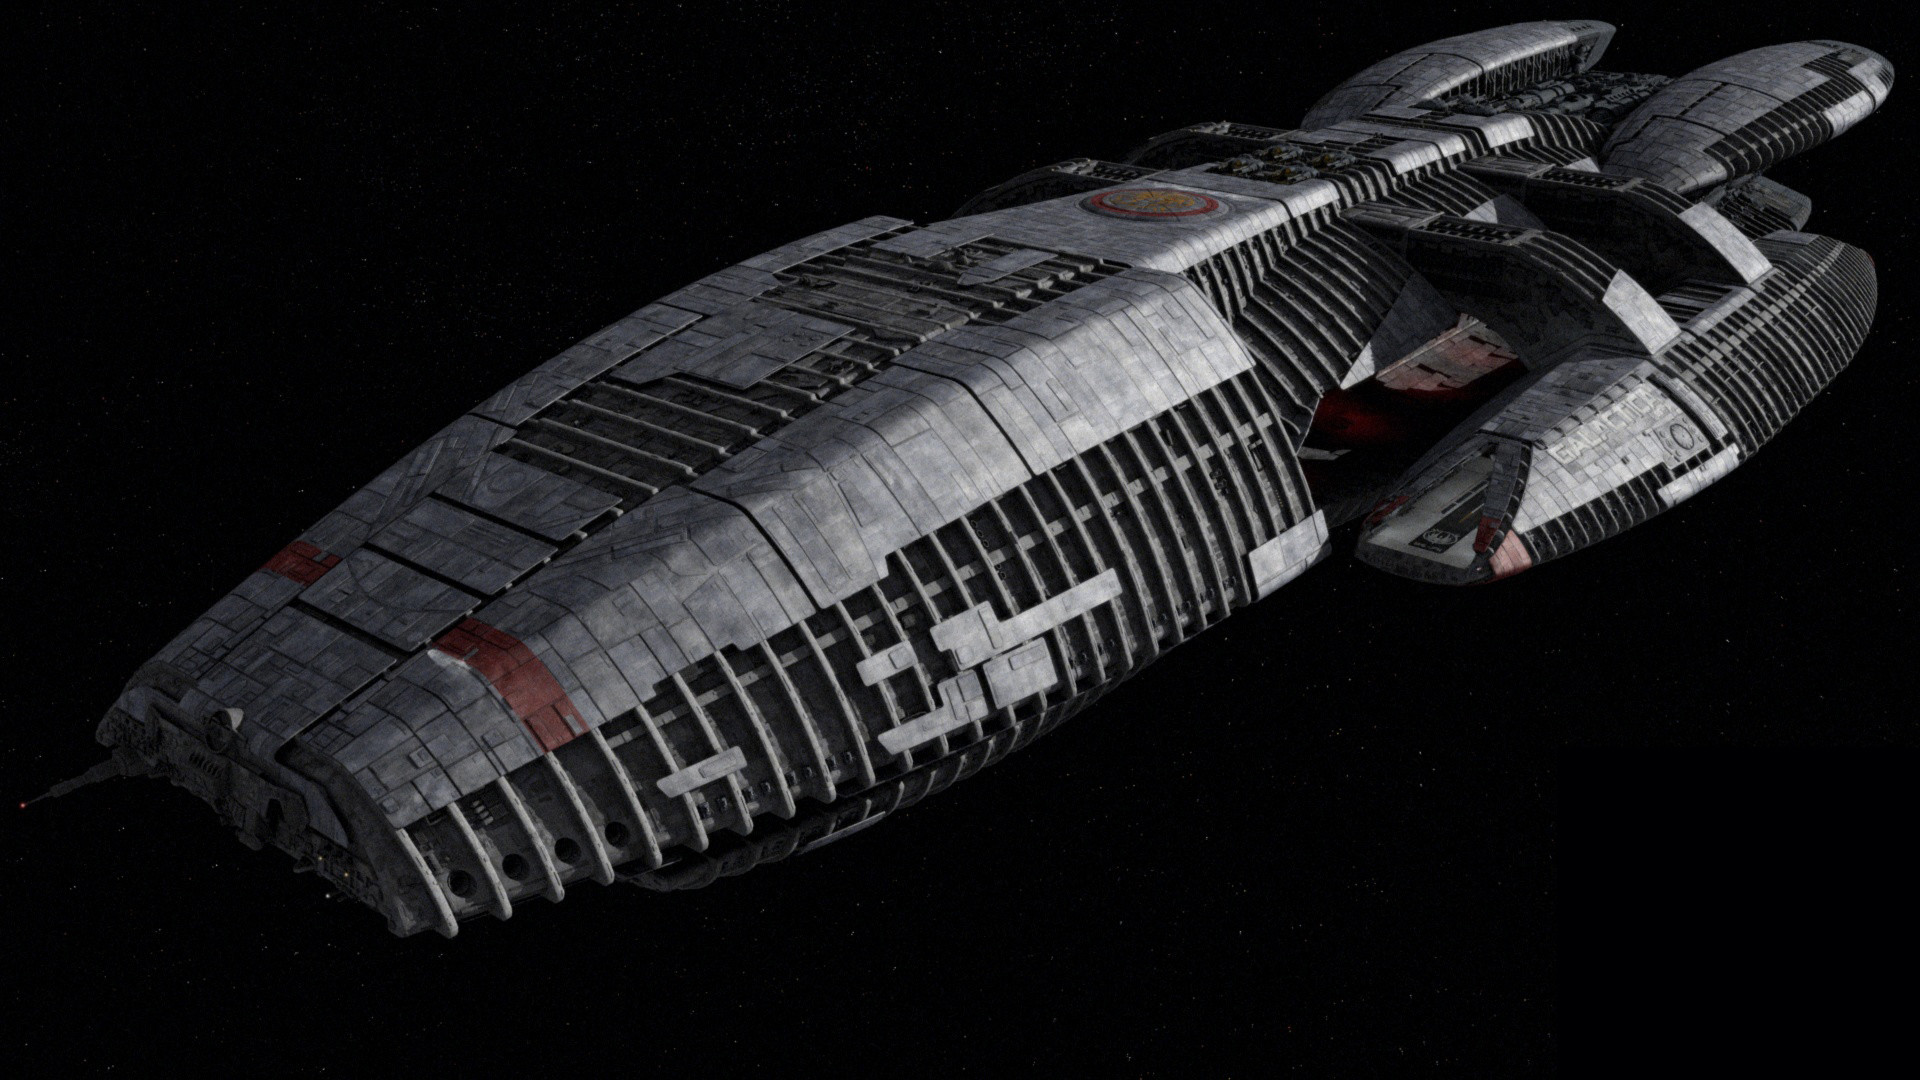 Syfy – Watch Full Episodes   Chinese news site posts Battlestar Galactica  as real aircraft carrier design